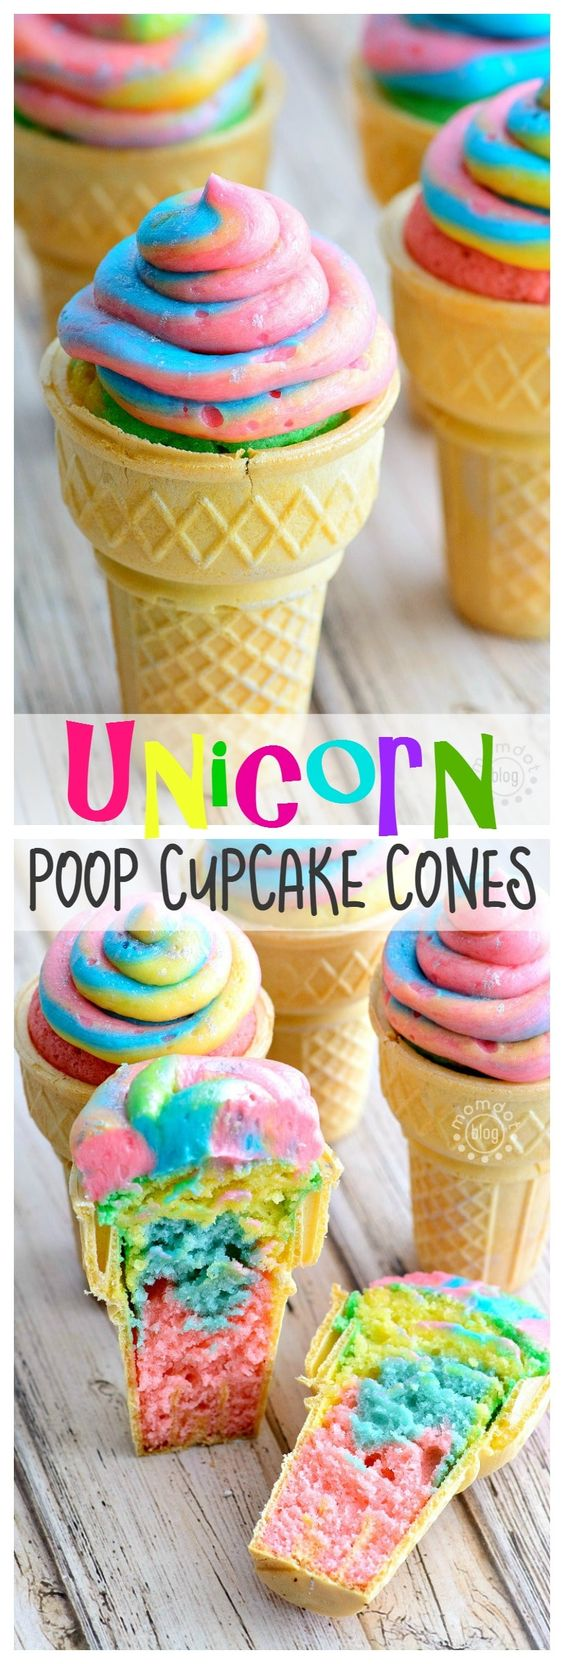 Unicorn desserts for a unicorn party: Unicorn Poop Cupcake Cones